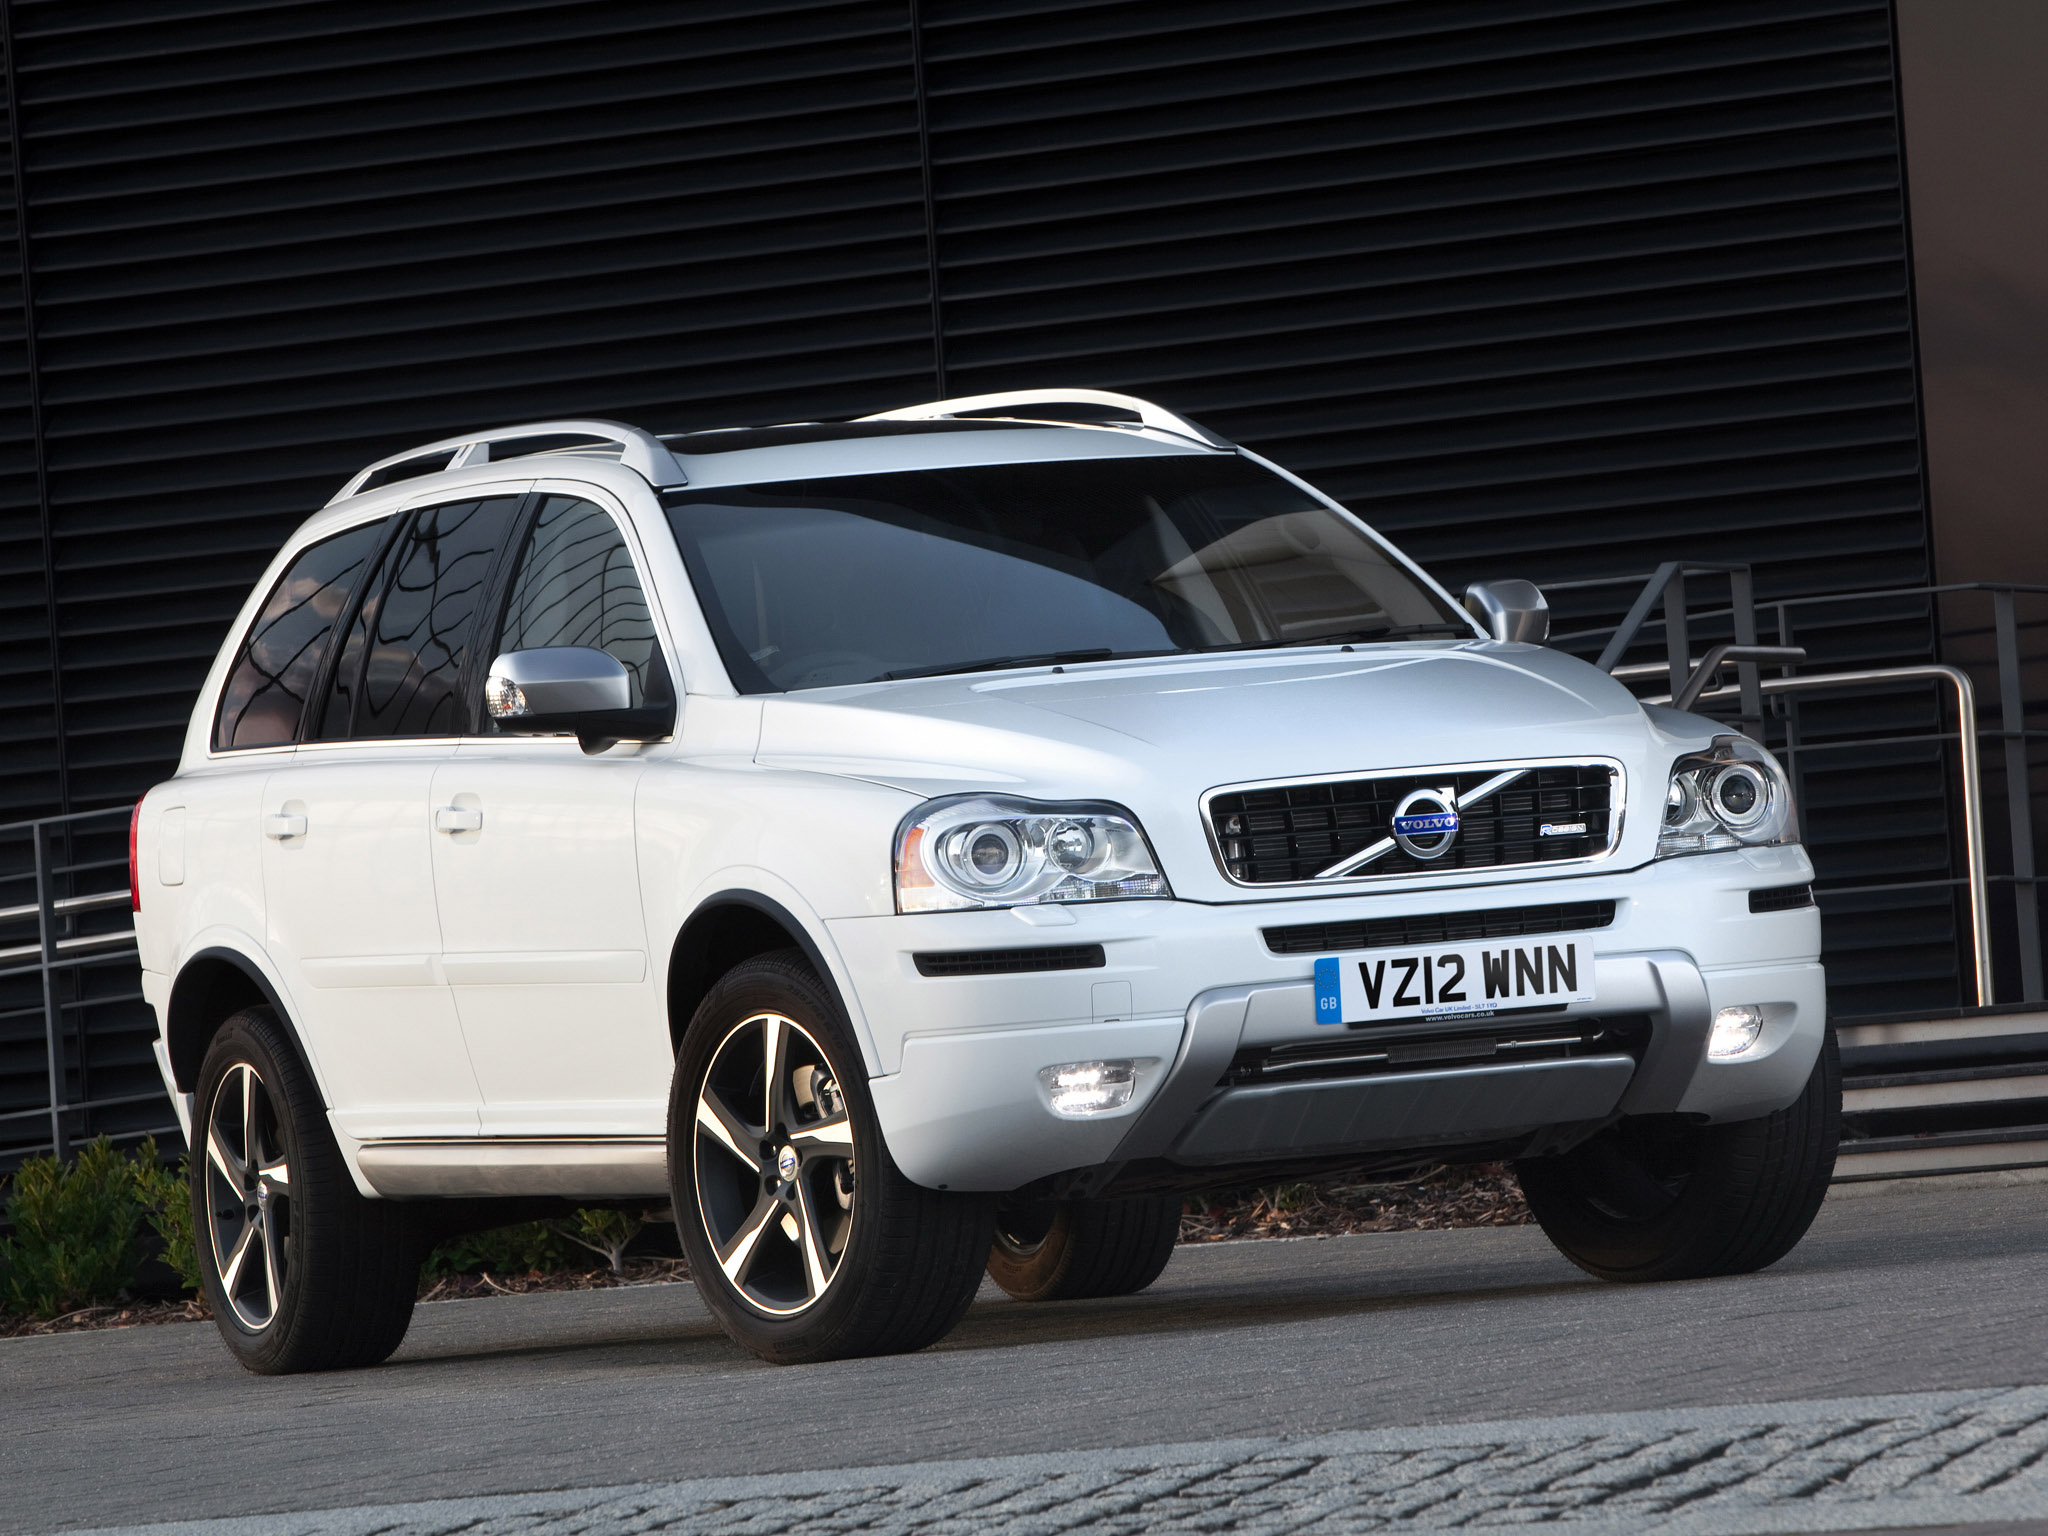 volvo xc90 r design uk 2012 volvo xc90 r design uk 2012 photo 05 car in pictures car photo. Black Bedroom Furniture Sets. Home Design Ideas